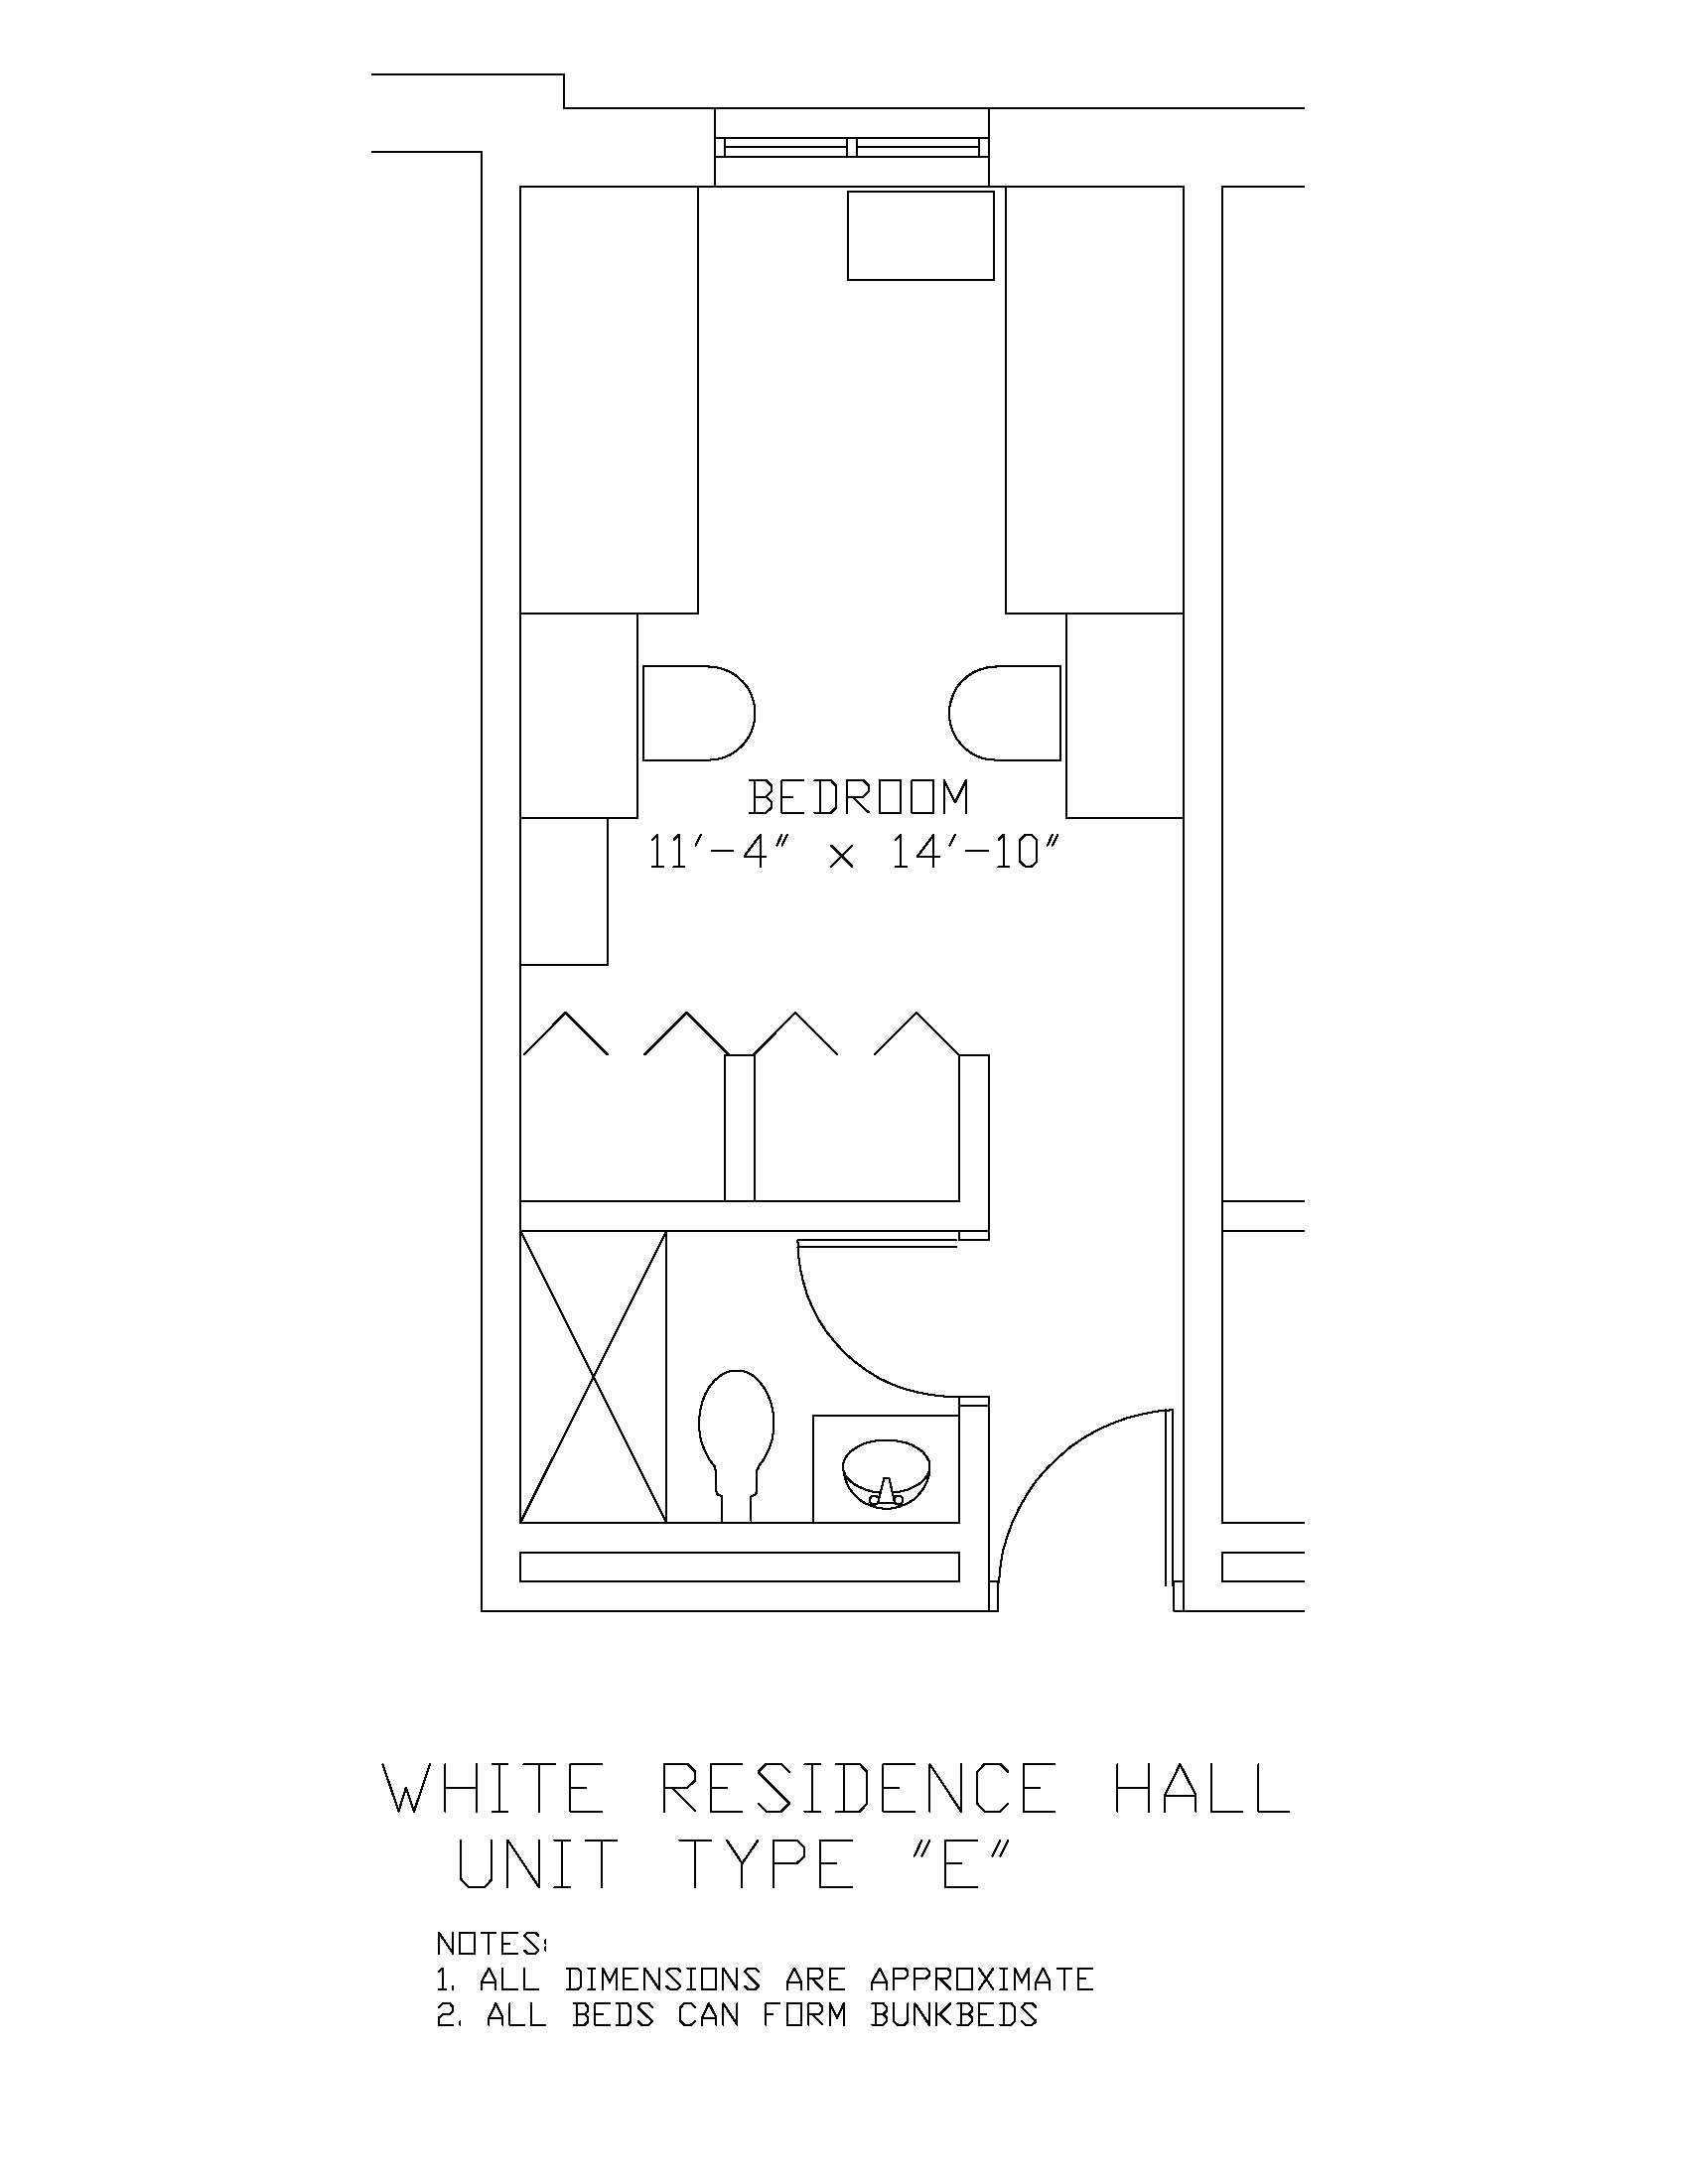 James S. White Hall: Type E